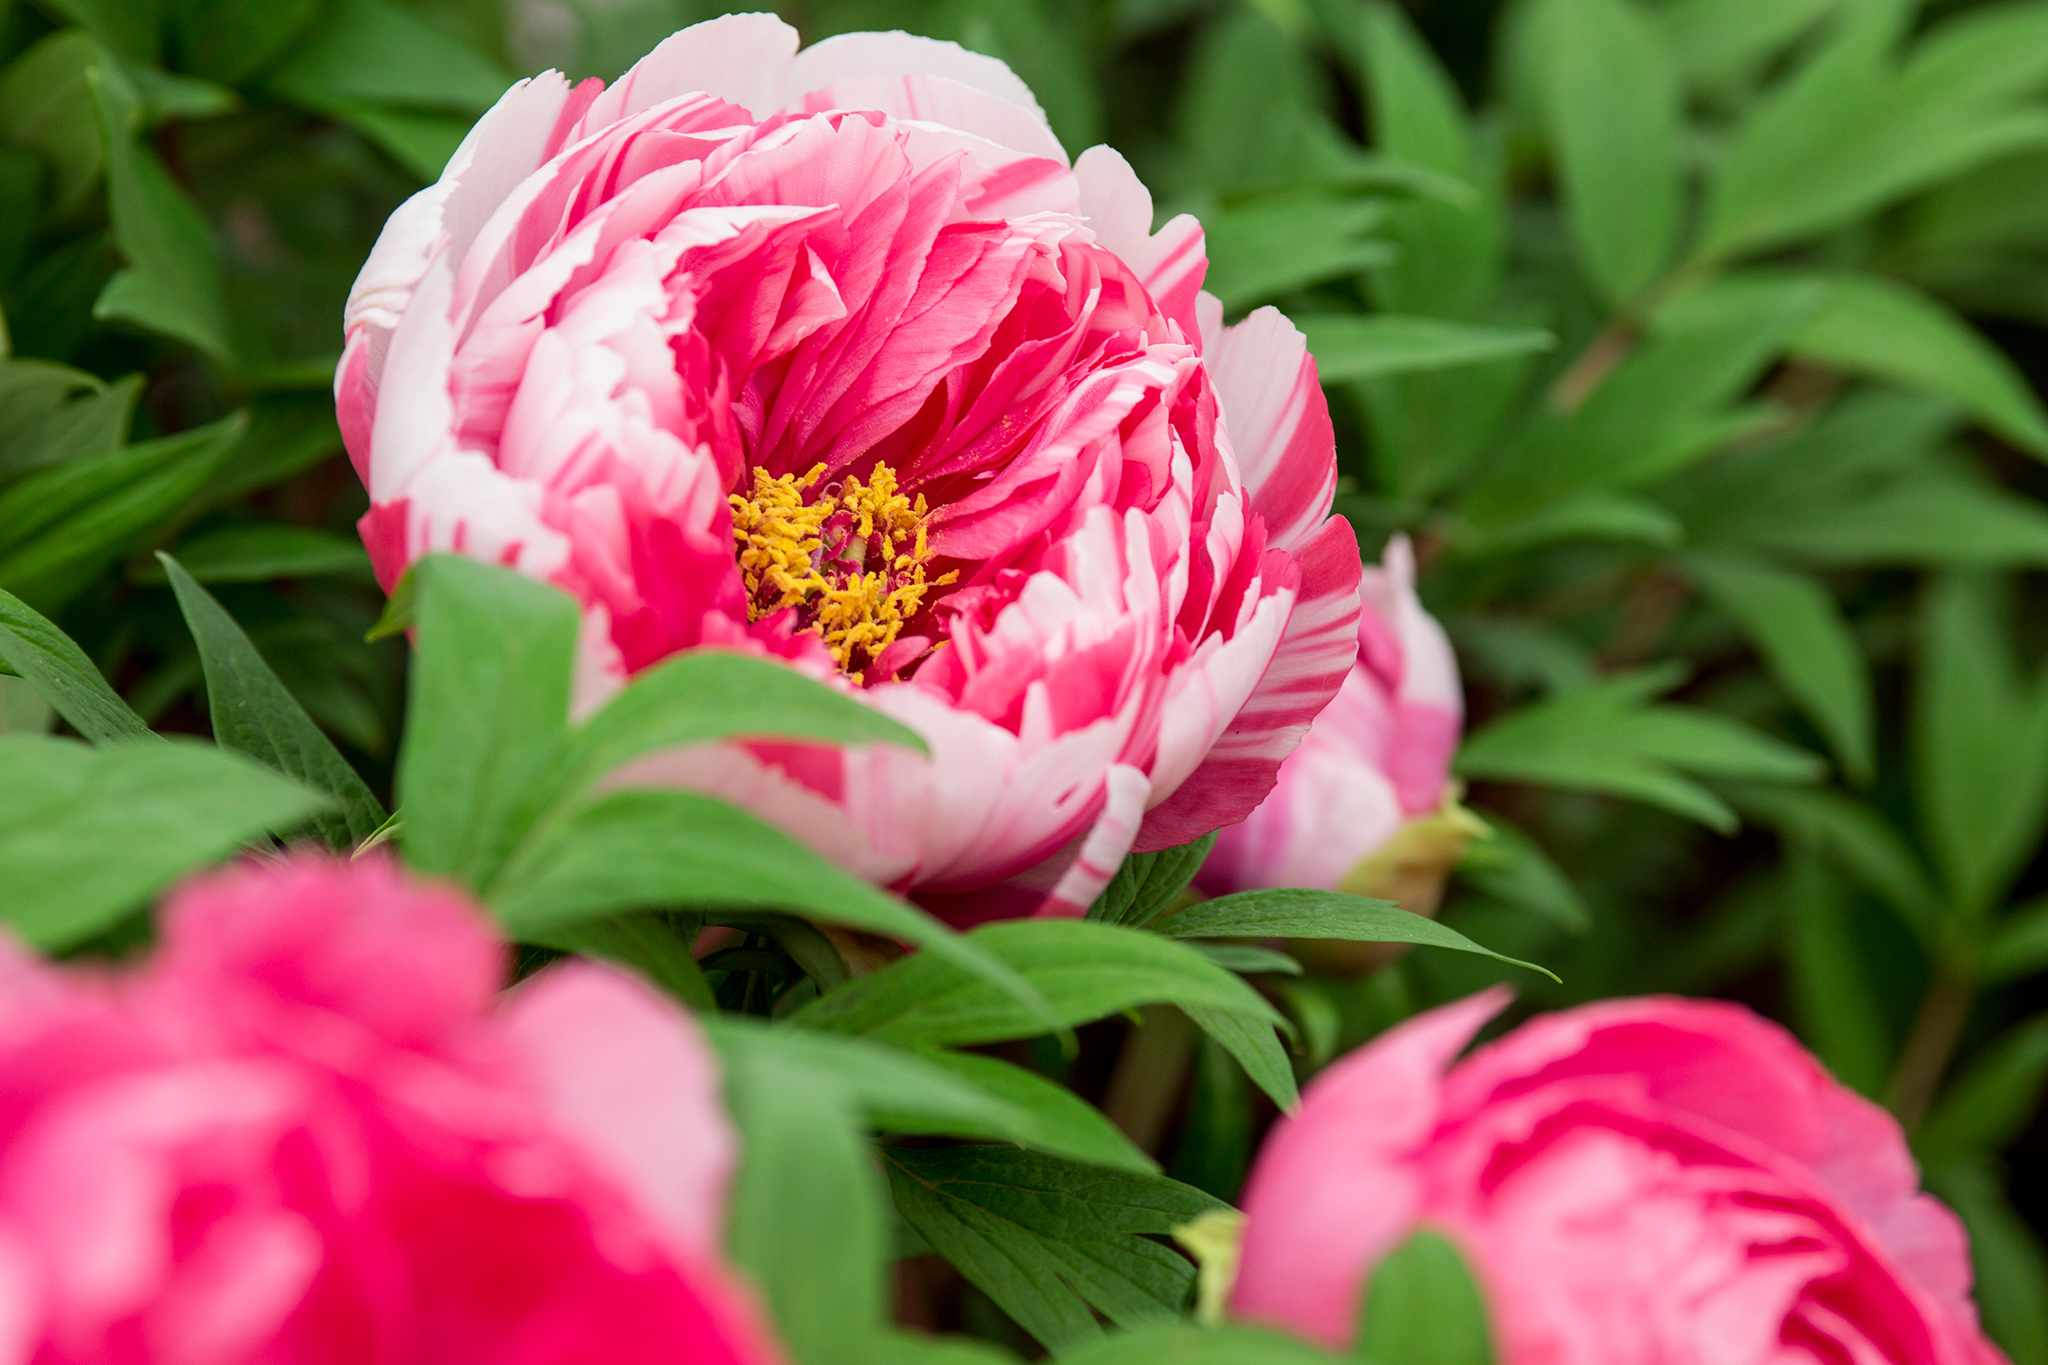 Japanese tree Peony Shimane Nishiki deciduous shrub red and white striped large semi double blooms wide variation in colour on one plant paeonia Kelways peonies 180515 18052015 18/05/15 18/05/2015 18 18th May 2015 early Summer RHS Chelsea Flower Show 2015 photographer Paul Debois Plant portraits closeups from Floral Marquee /m/loader/final_group_loader/Paul Debois Chelsea 18 May 2015 plant portraits/Images/